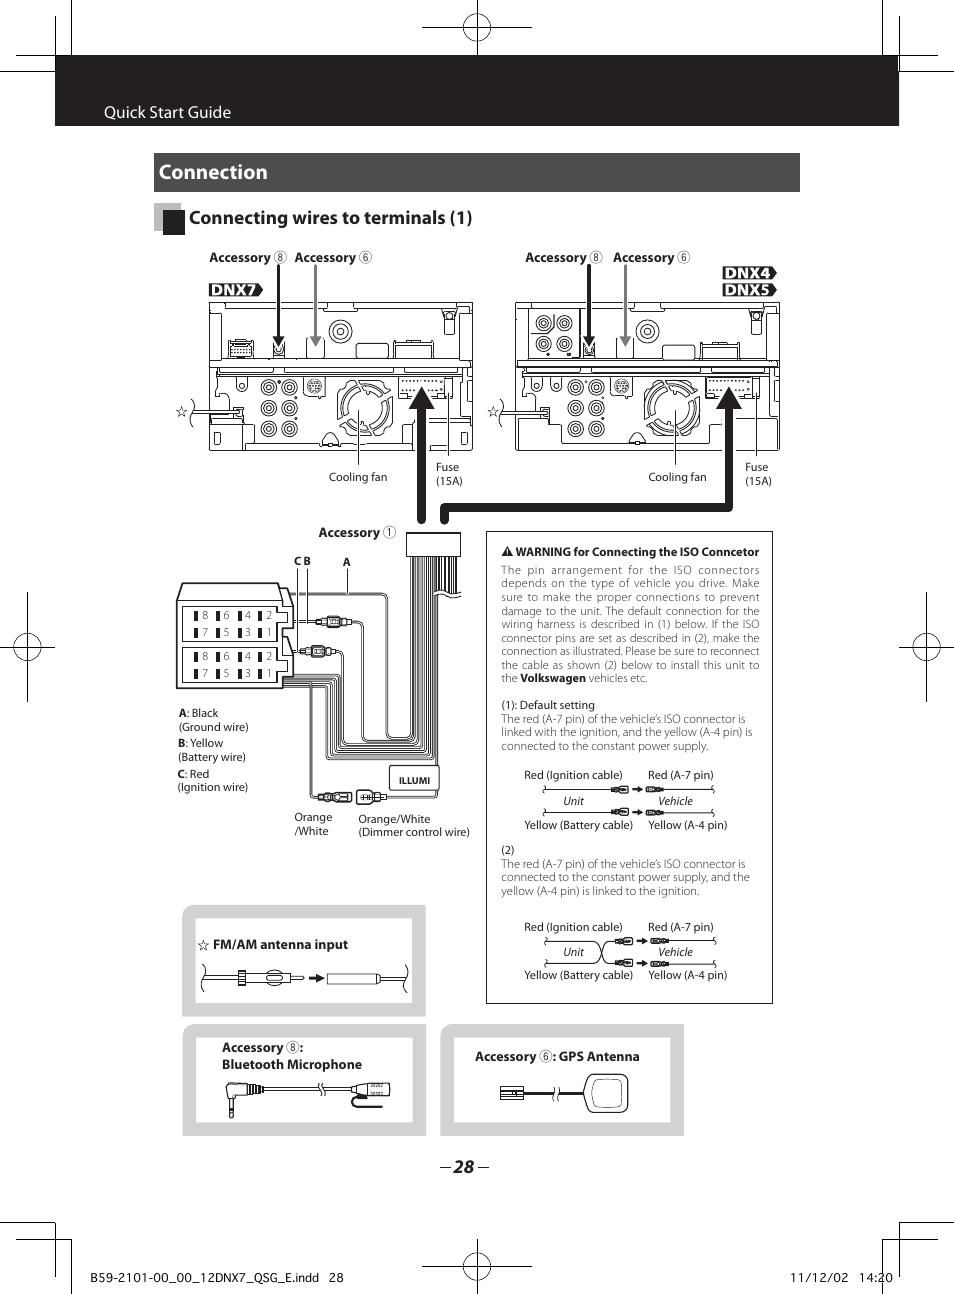 Connection Connecting Wires To Terminals 1 Quick Start Guide John Deere 5210 Wiring Diagram Kenwood Dnx5210bt User Manual Page 28 36